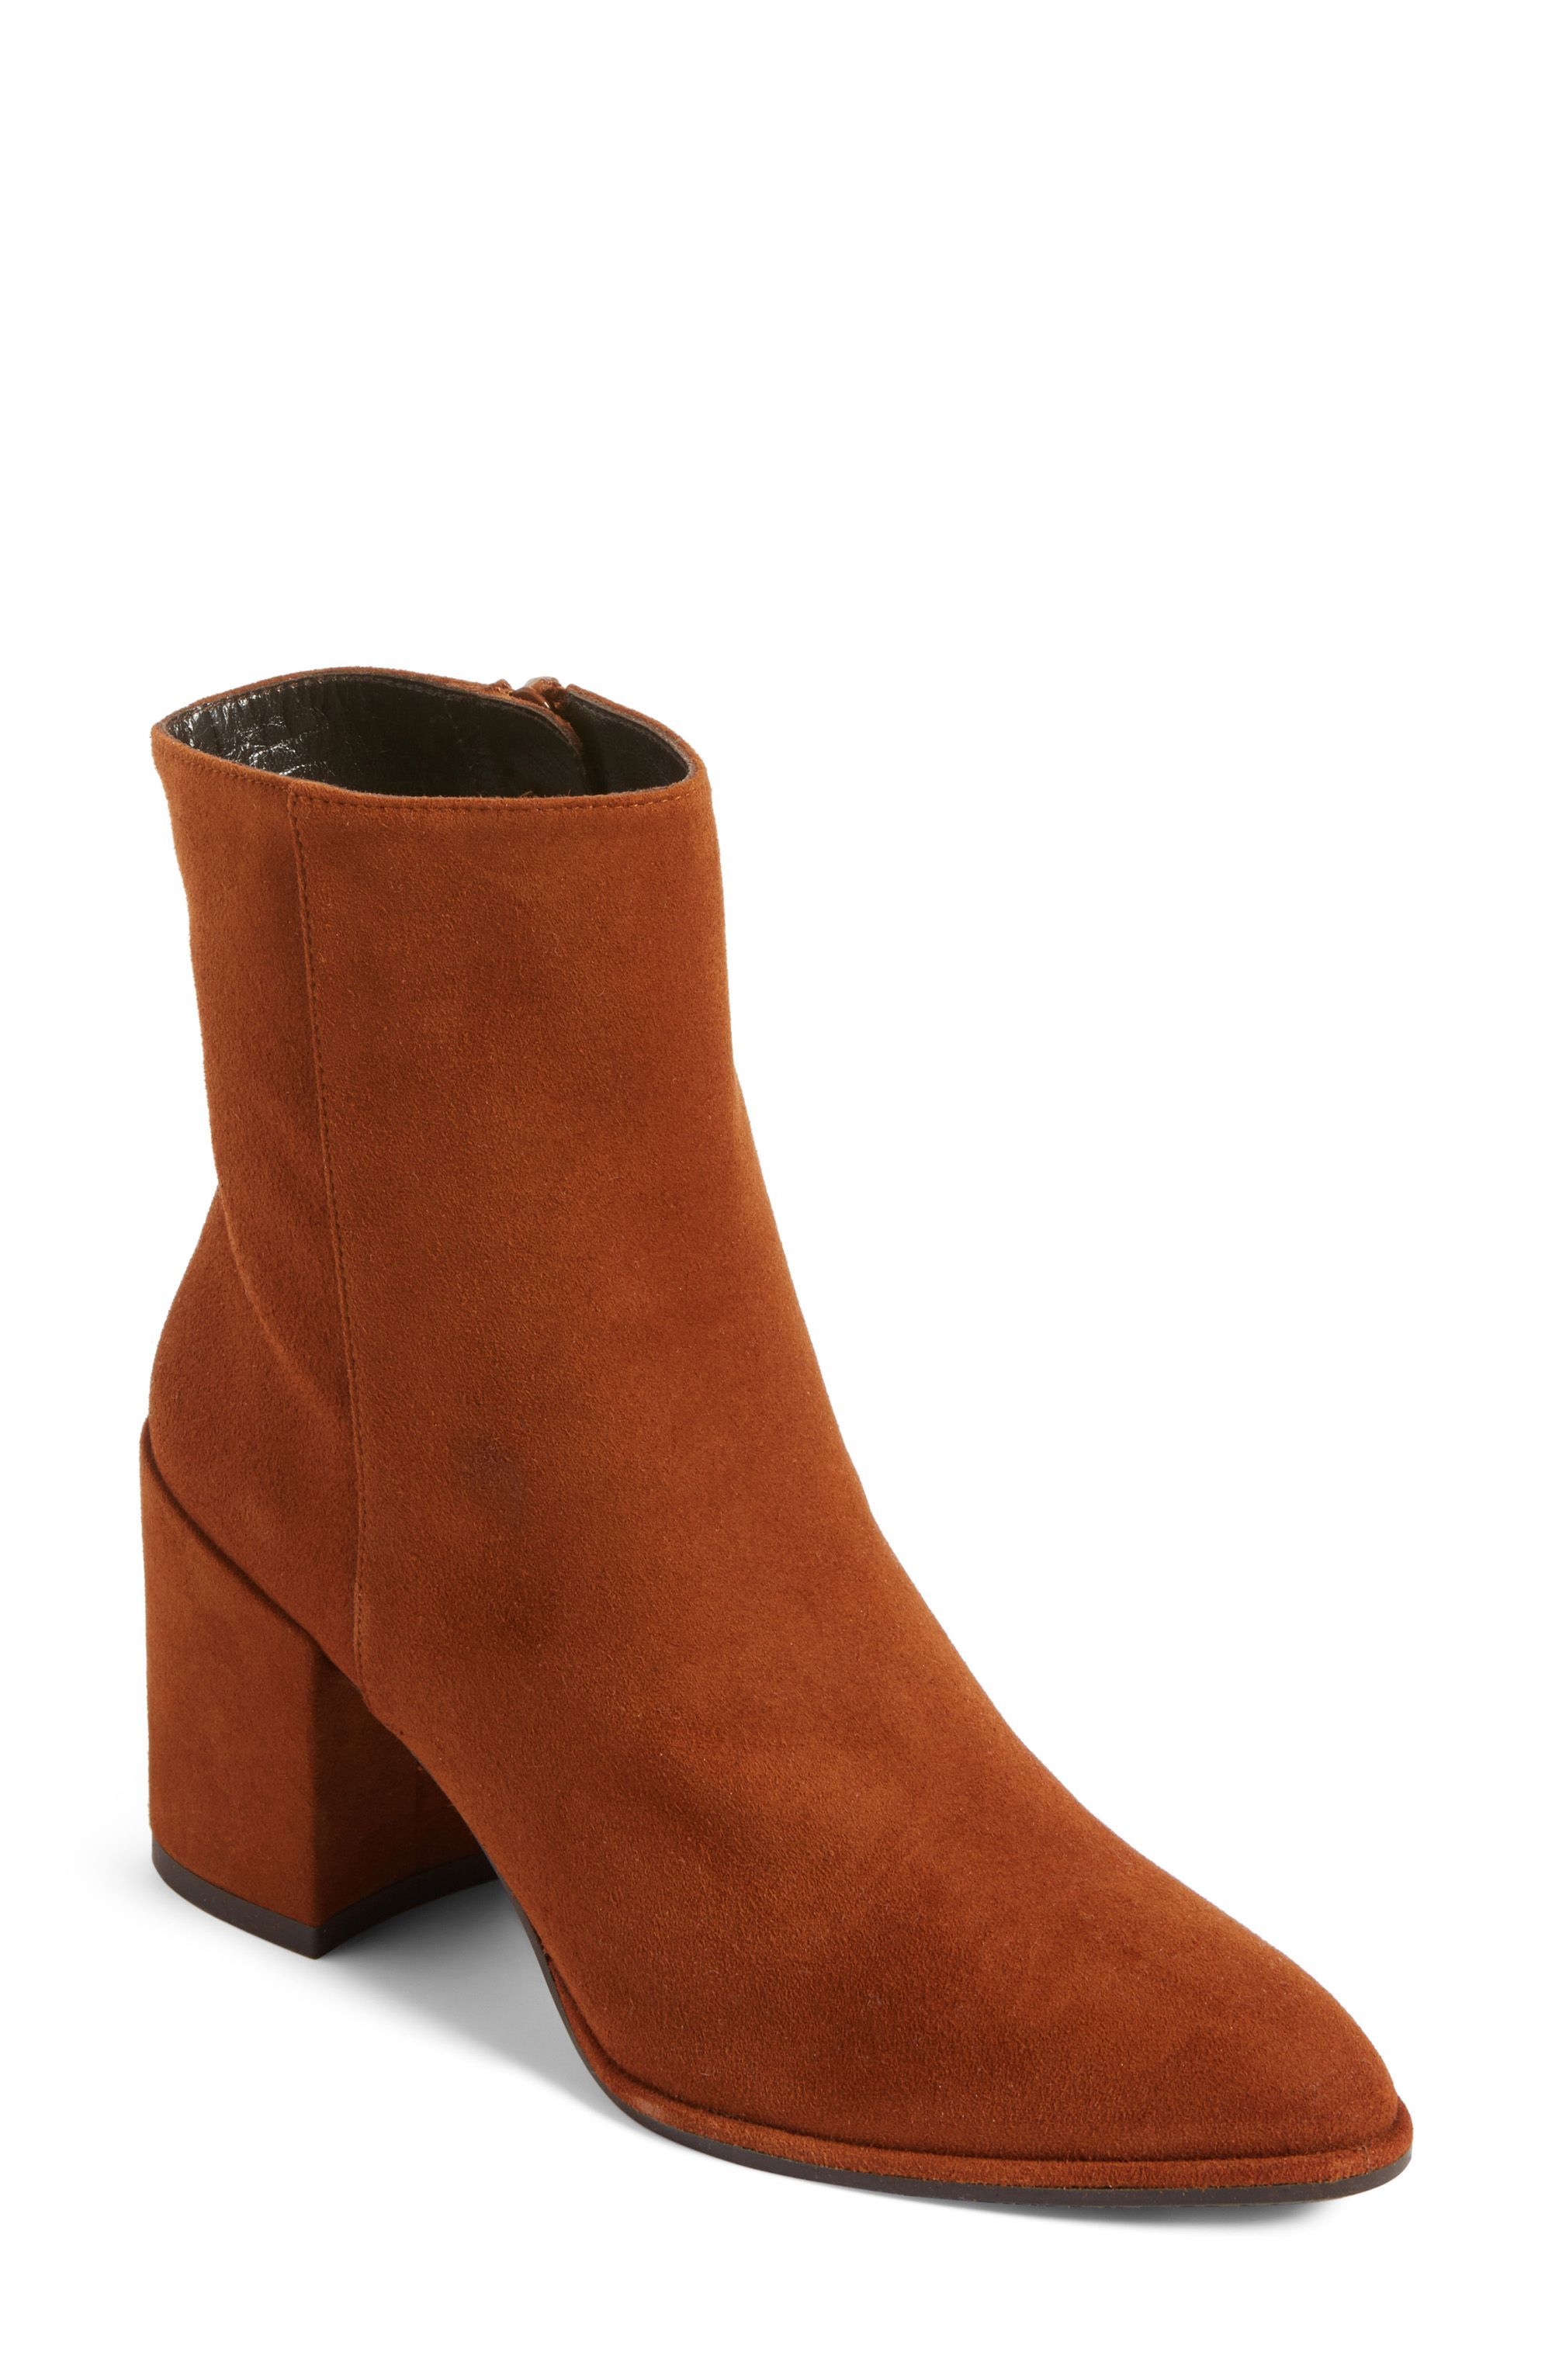 504f19f3b42 ... Stuart Weitzman Shoes Accessories For Women. Key Fall Pieces With  Nordstrom Chase Amie